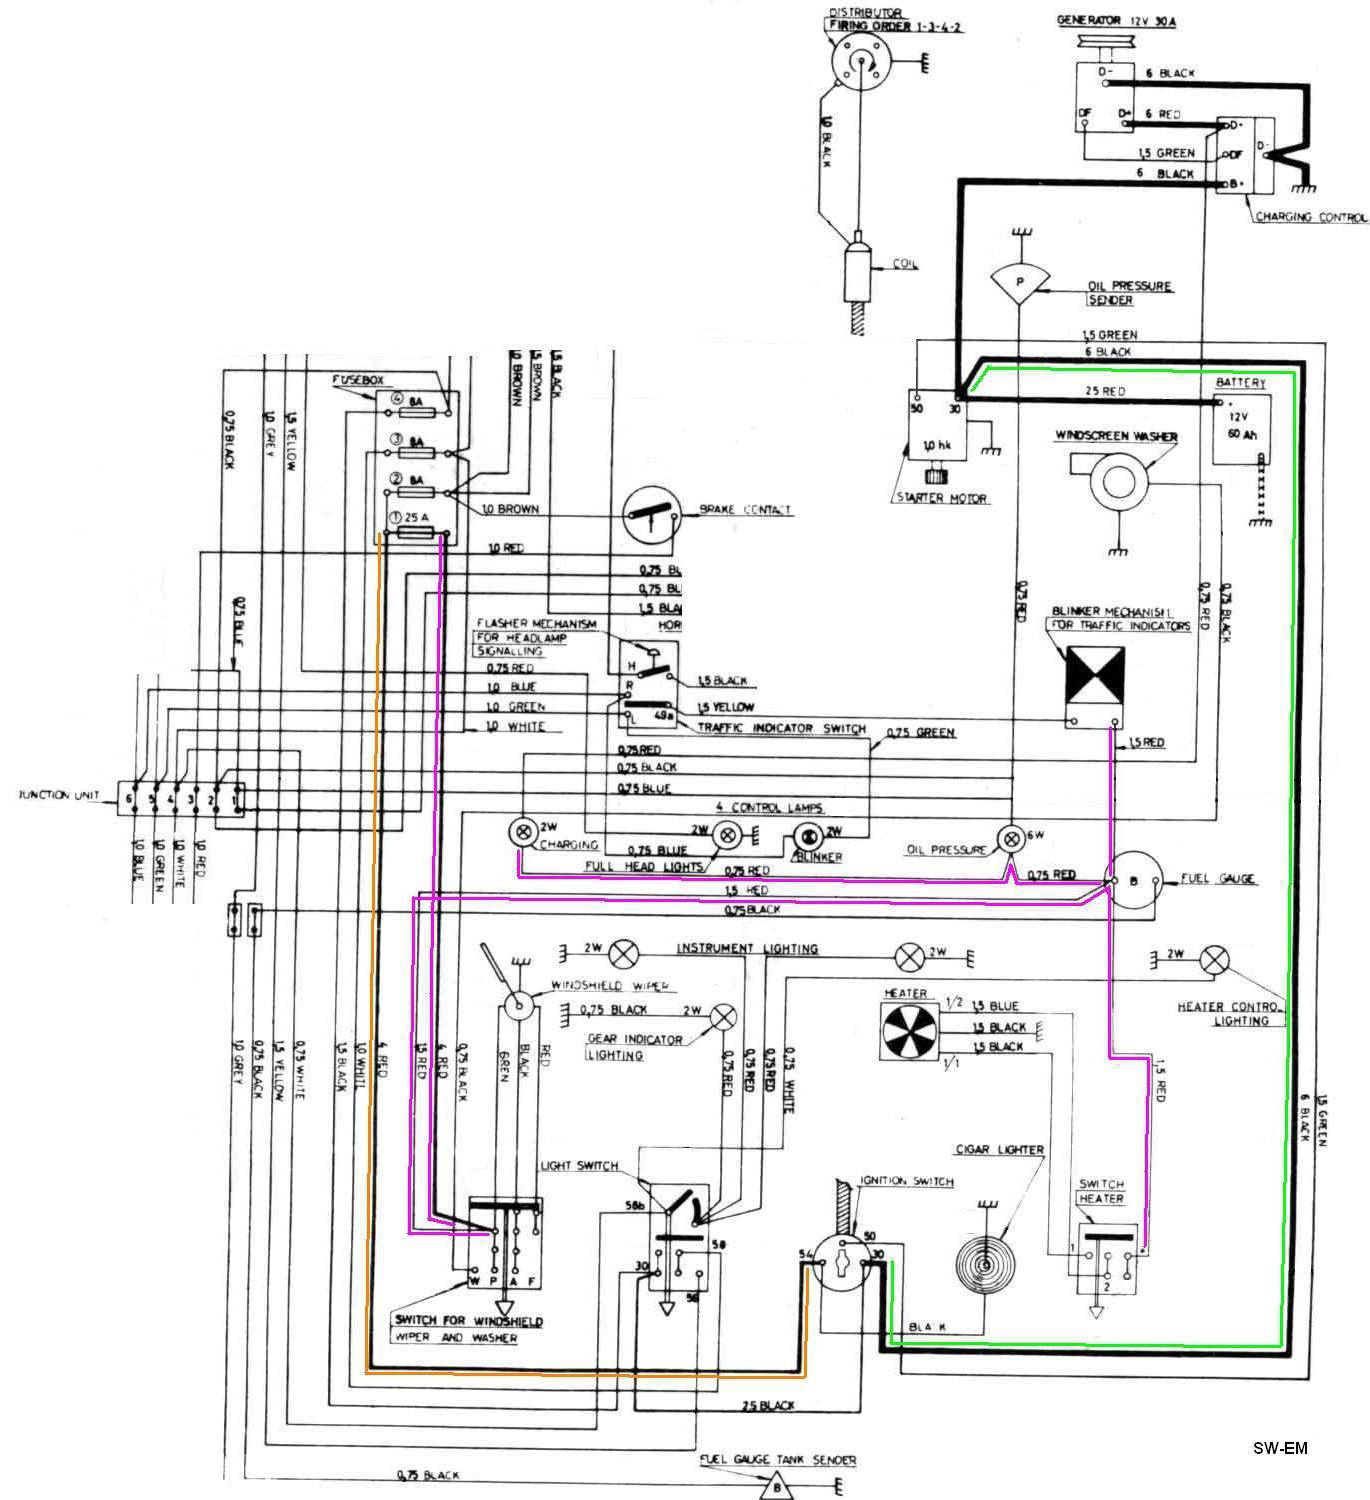 Volvo Ignition Wiring Diagram Wiring Diagrams Name Name Miglioribanche It